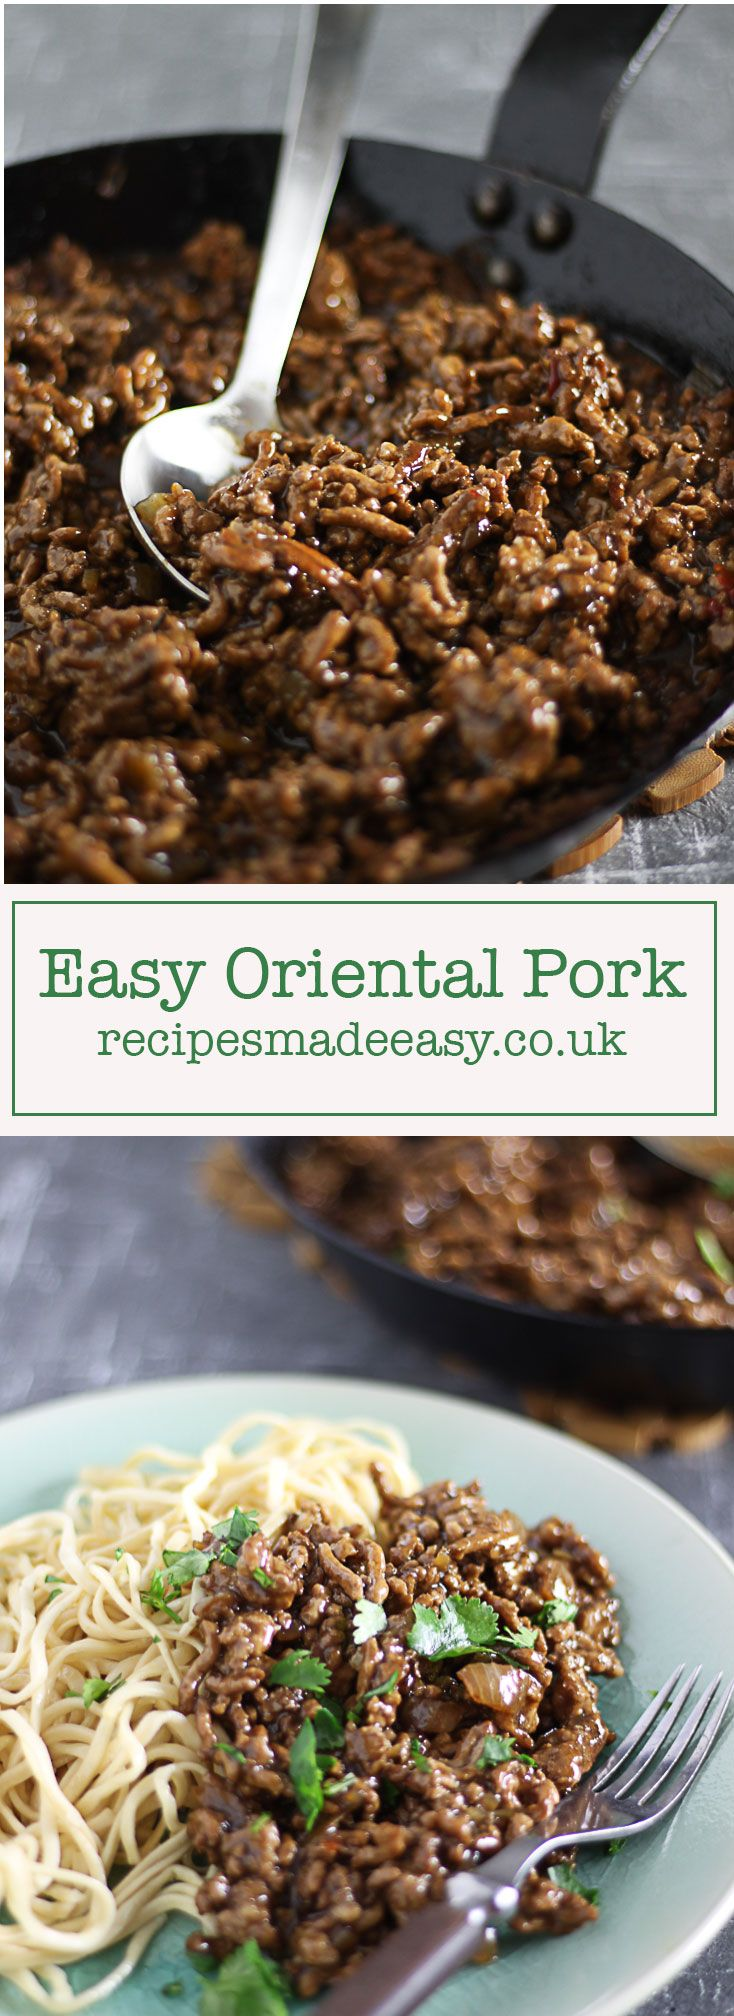 Easy Oriental Pork. A savoury mince flavoured with sweetchilli, oyster and soy sauce by recipesmadeeasy.co.uk